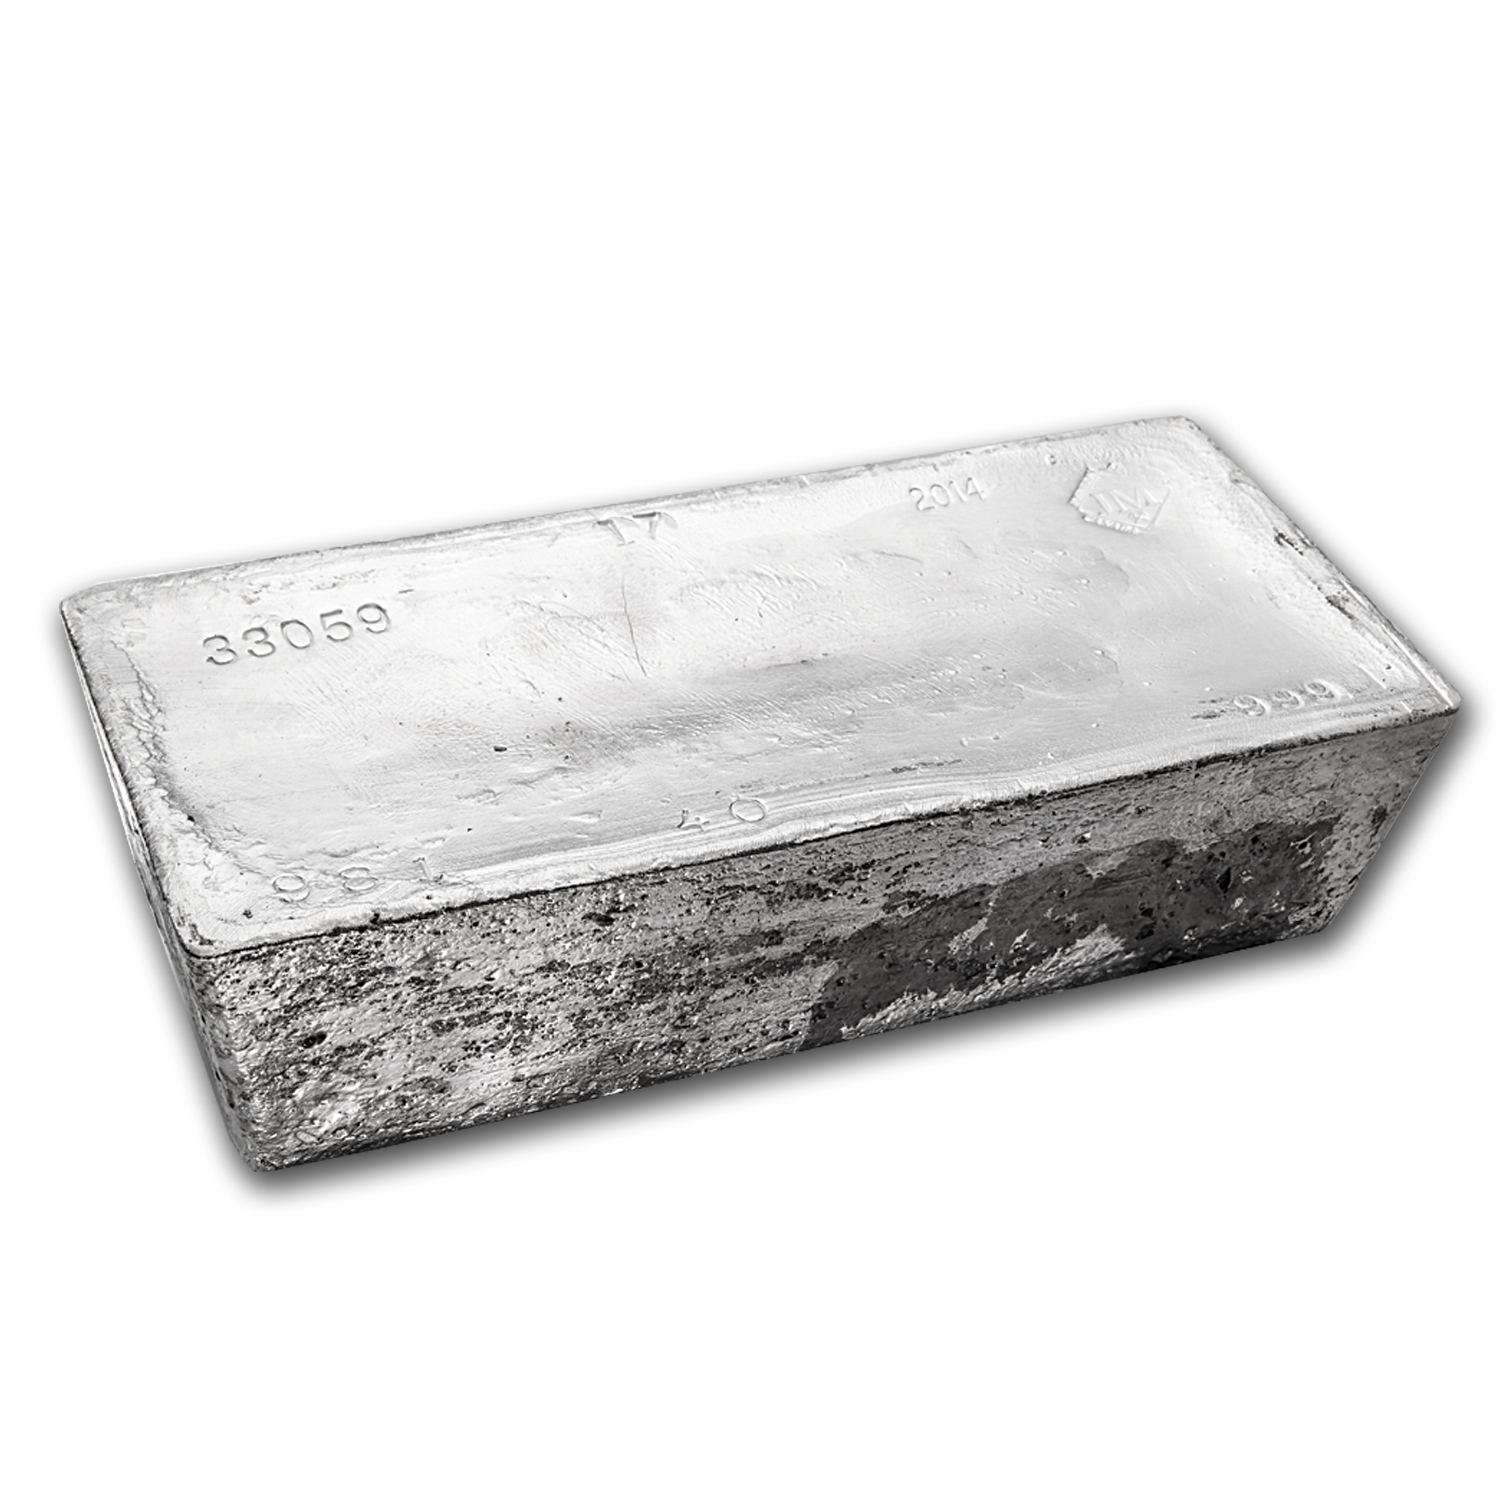 957.00 oz Silver Bar - Johnson Matthey